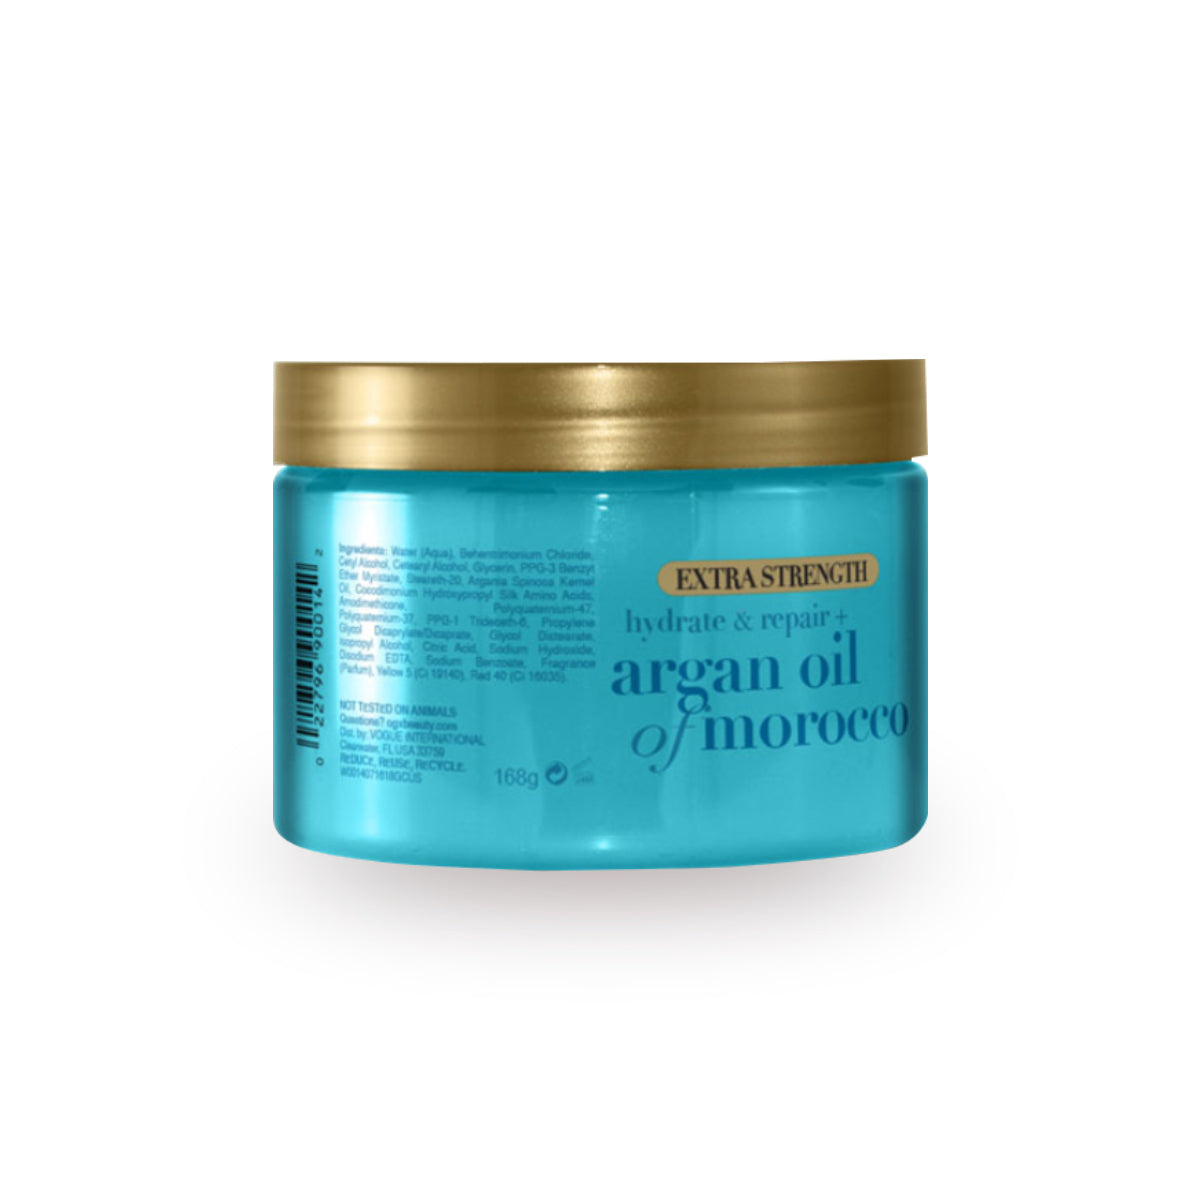 OGX ARGAN OIL OF MOROCCO EXTRA STRENGTH HYDRATE & REPAIR HAIR MASK